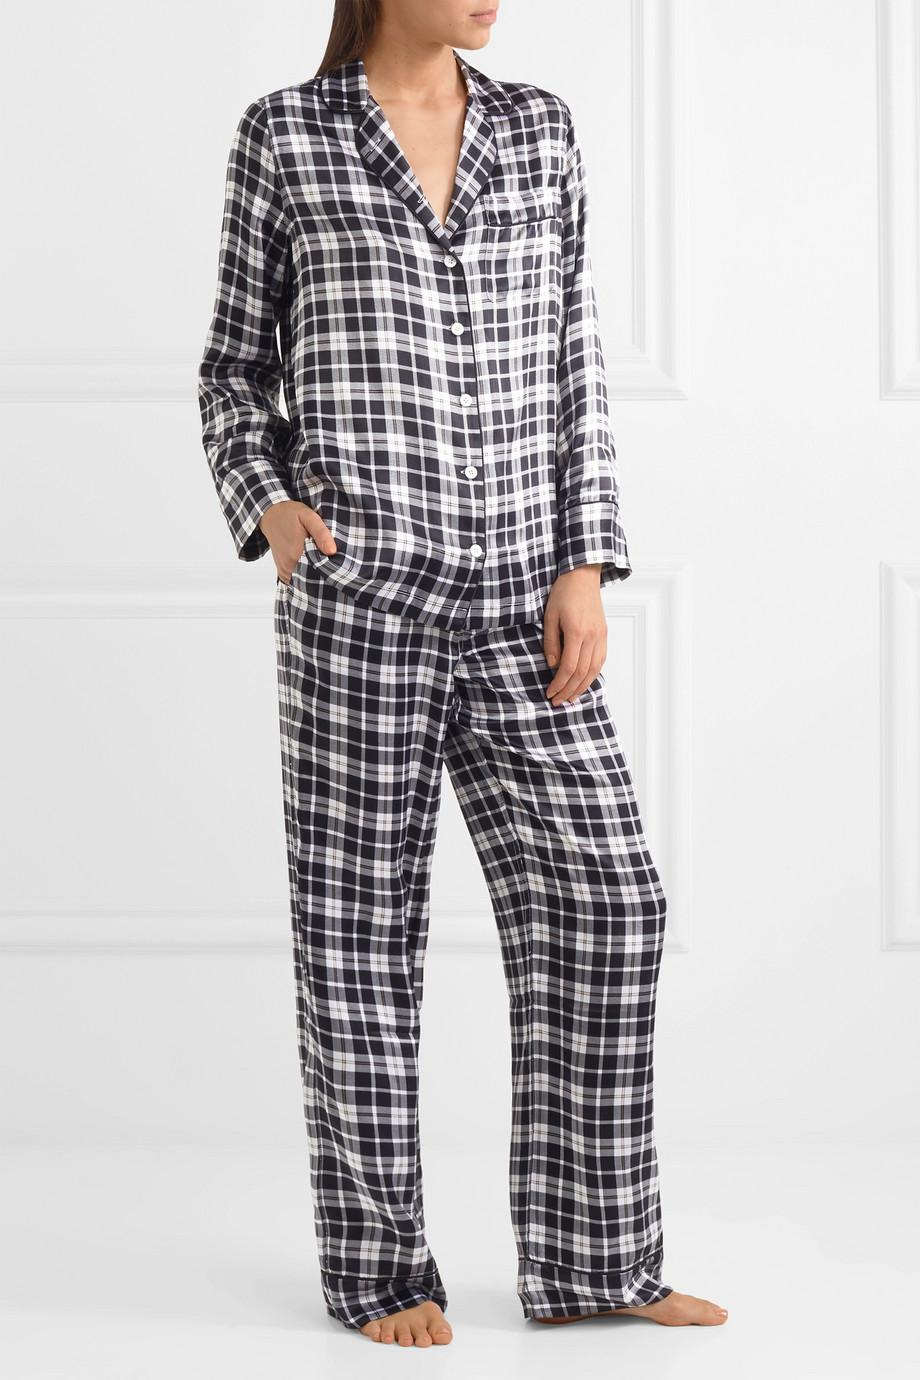 Lyst - Equipment Avery Checked Washed-silk Pajama Set in Black f6e09b5d7